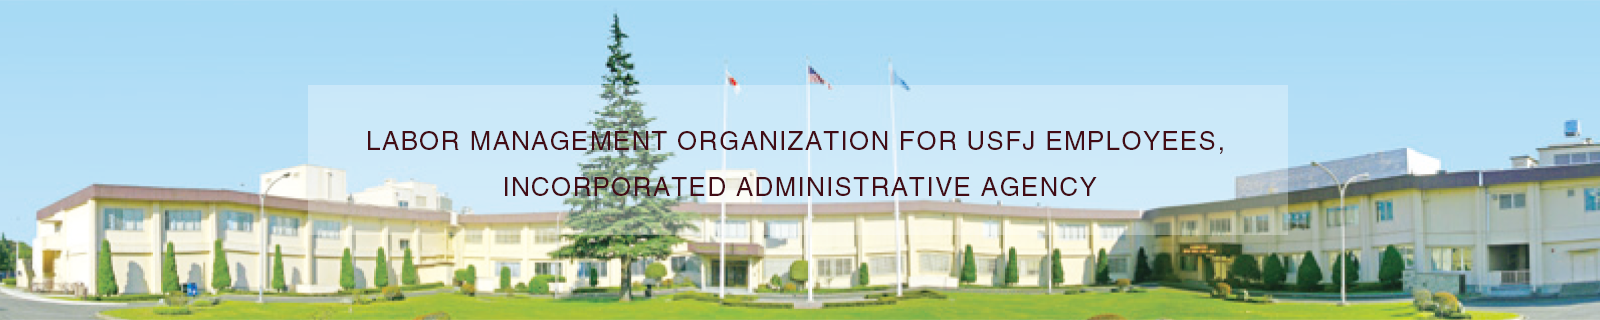 LABOR MANAGEMENT ORGANIZATION FOR USFJ EMPLOYEES, INCORPORATED ADMINISTRATIVE AGENCY